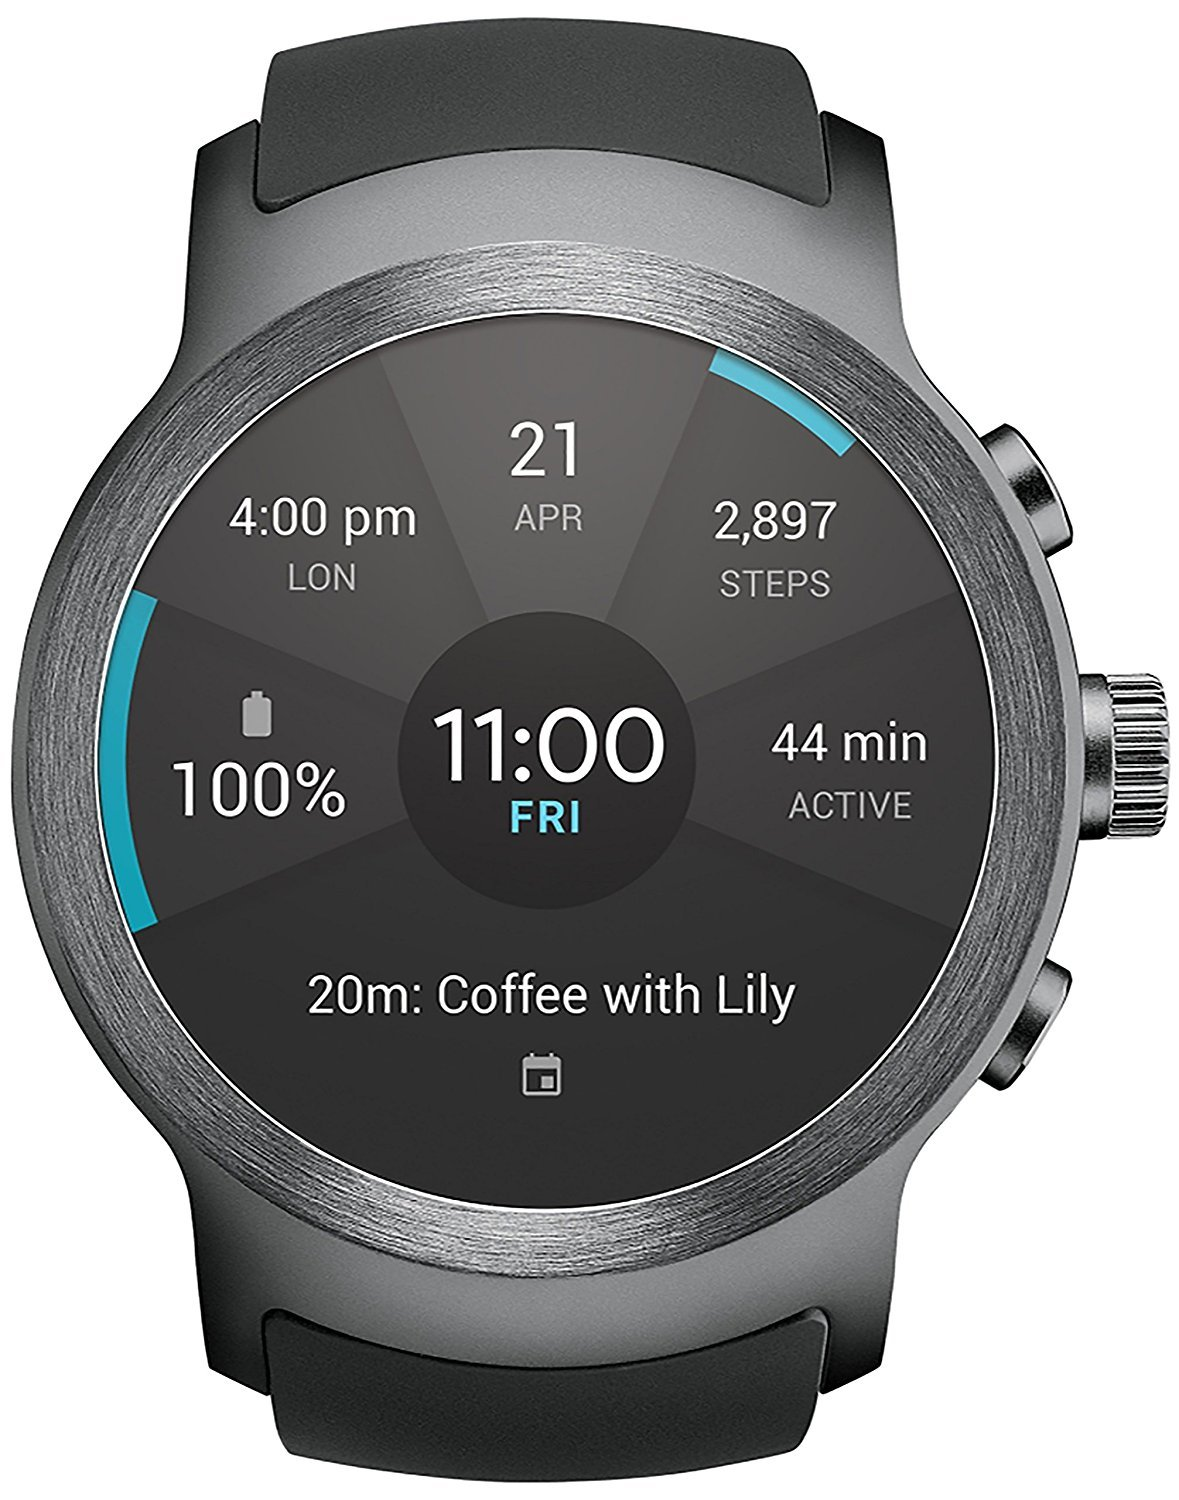 LG Watch SPORT Wi-Fi + Unlocked GSM Smartwatch w/ 1.38-inch P-OLED Display - Titan / Silver by LG